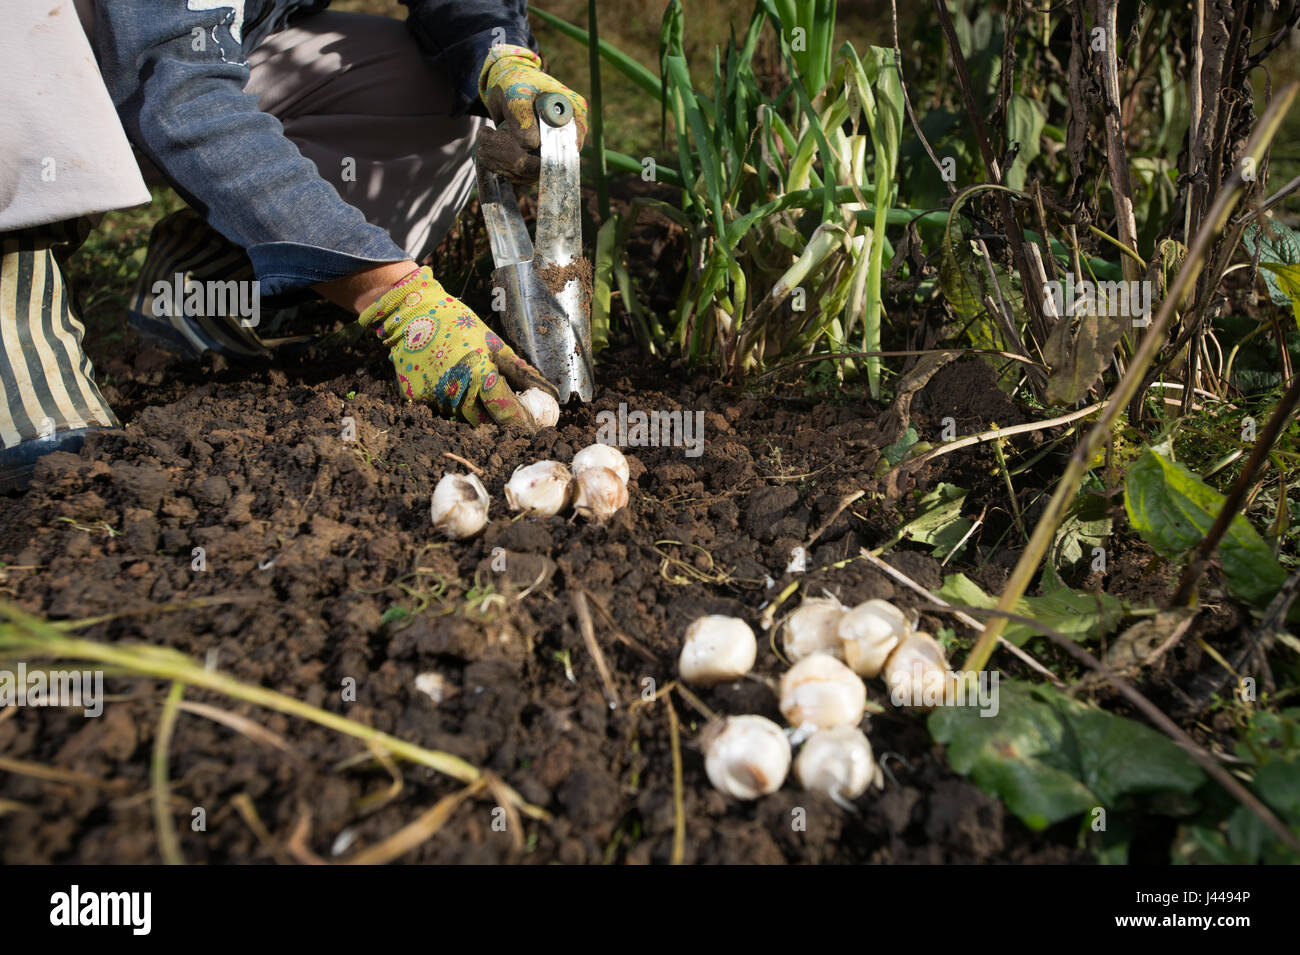 Close Up Of Hand Planting Bulbs With Flower Bulb Planter Outdoors In